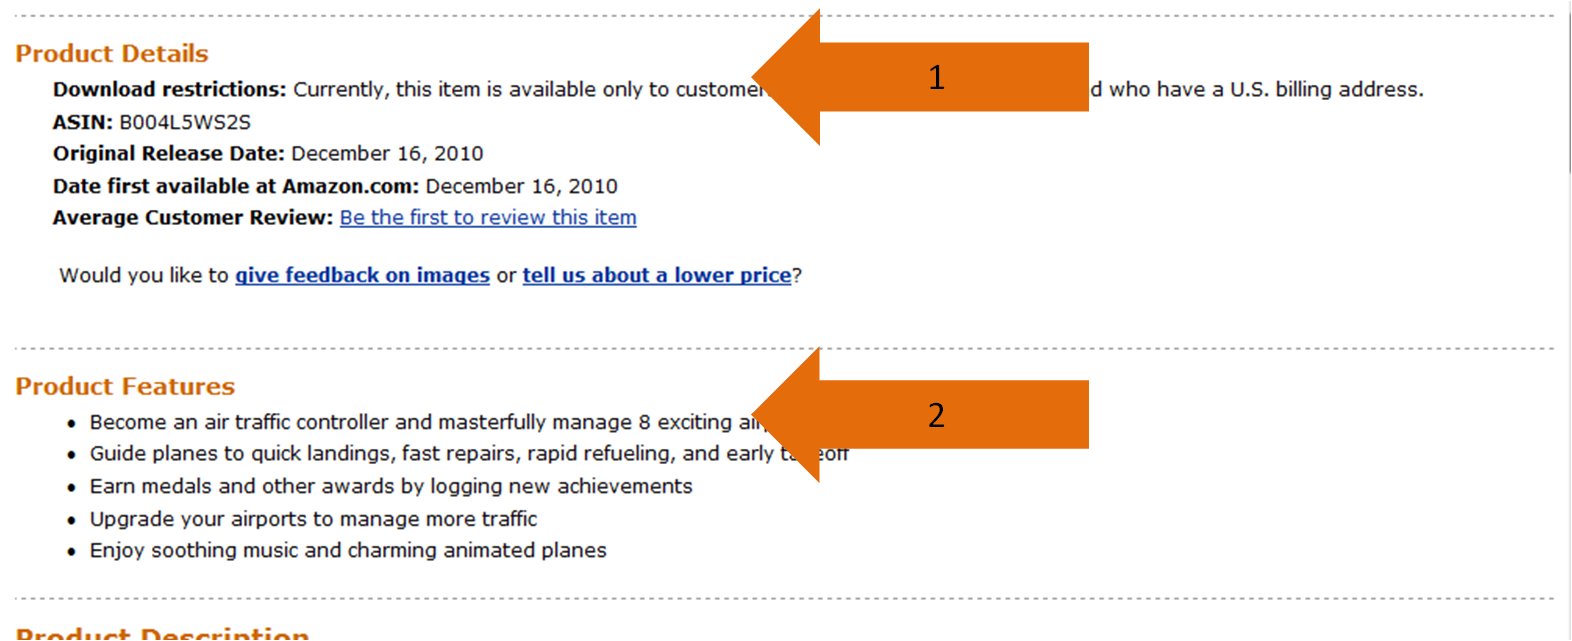 Amazon Product Features